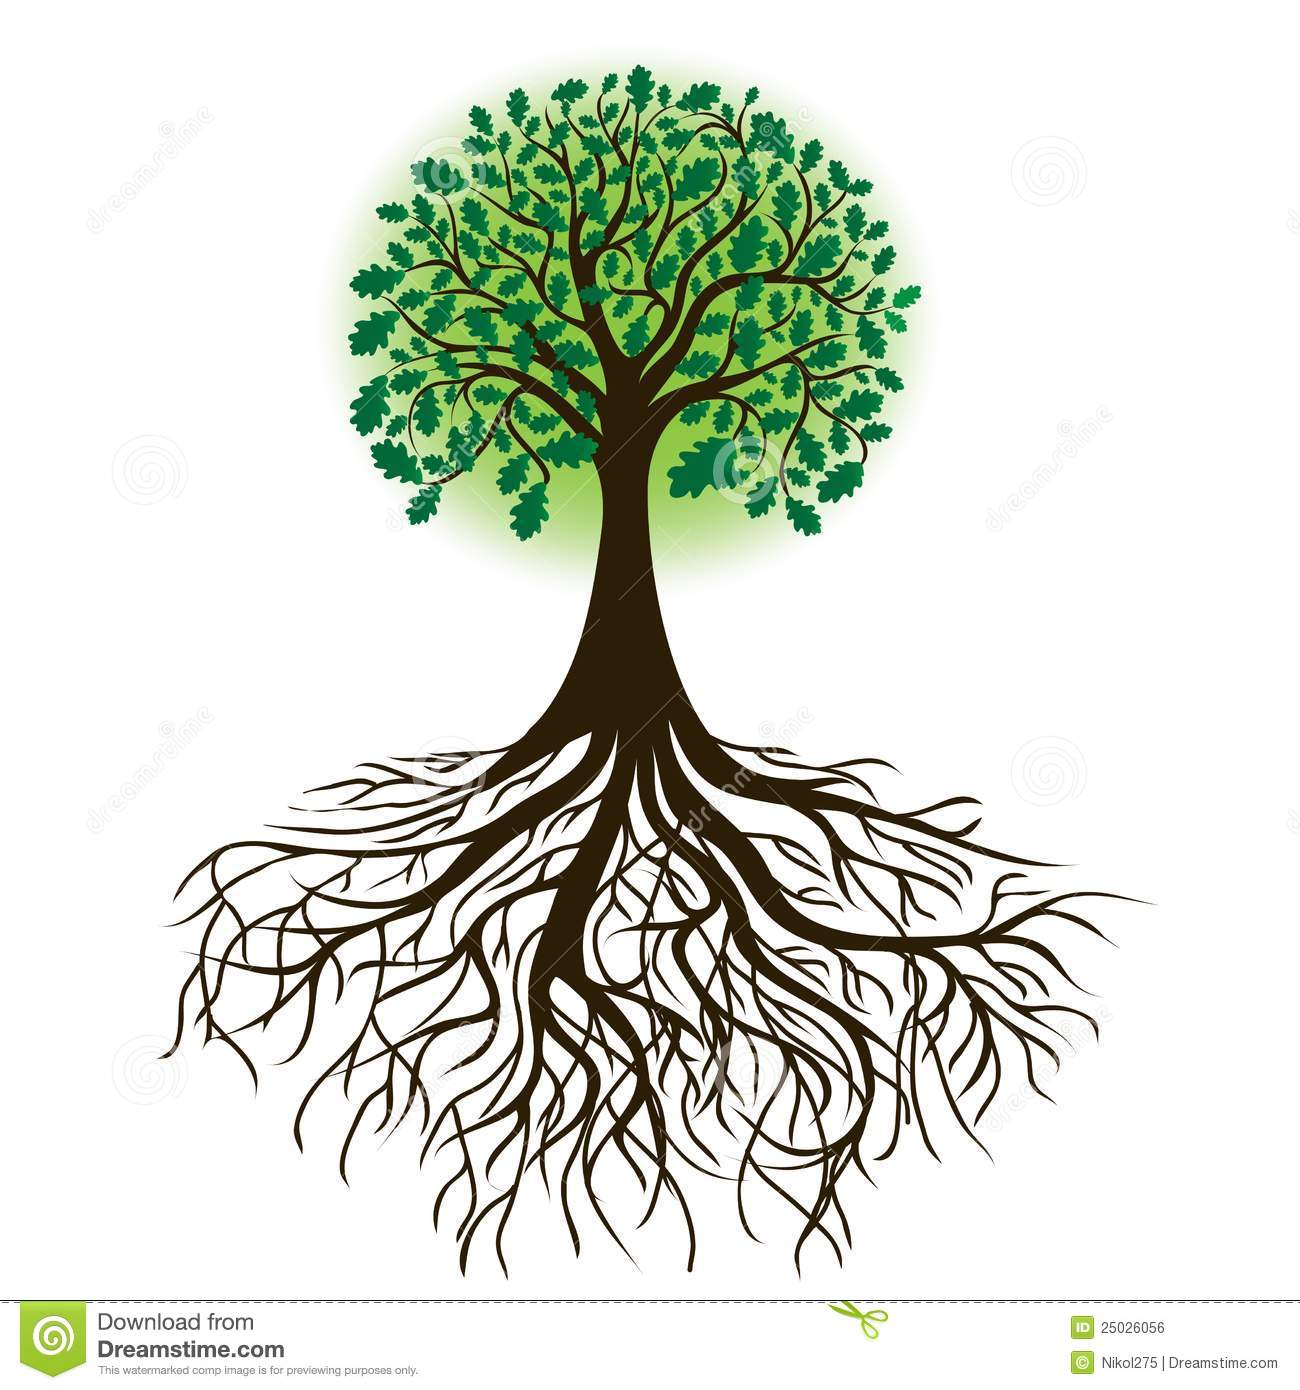 trees with roots clip art - Bing images